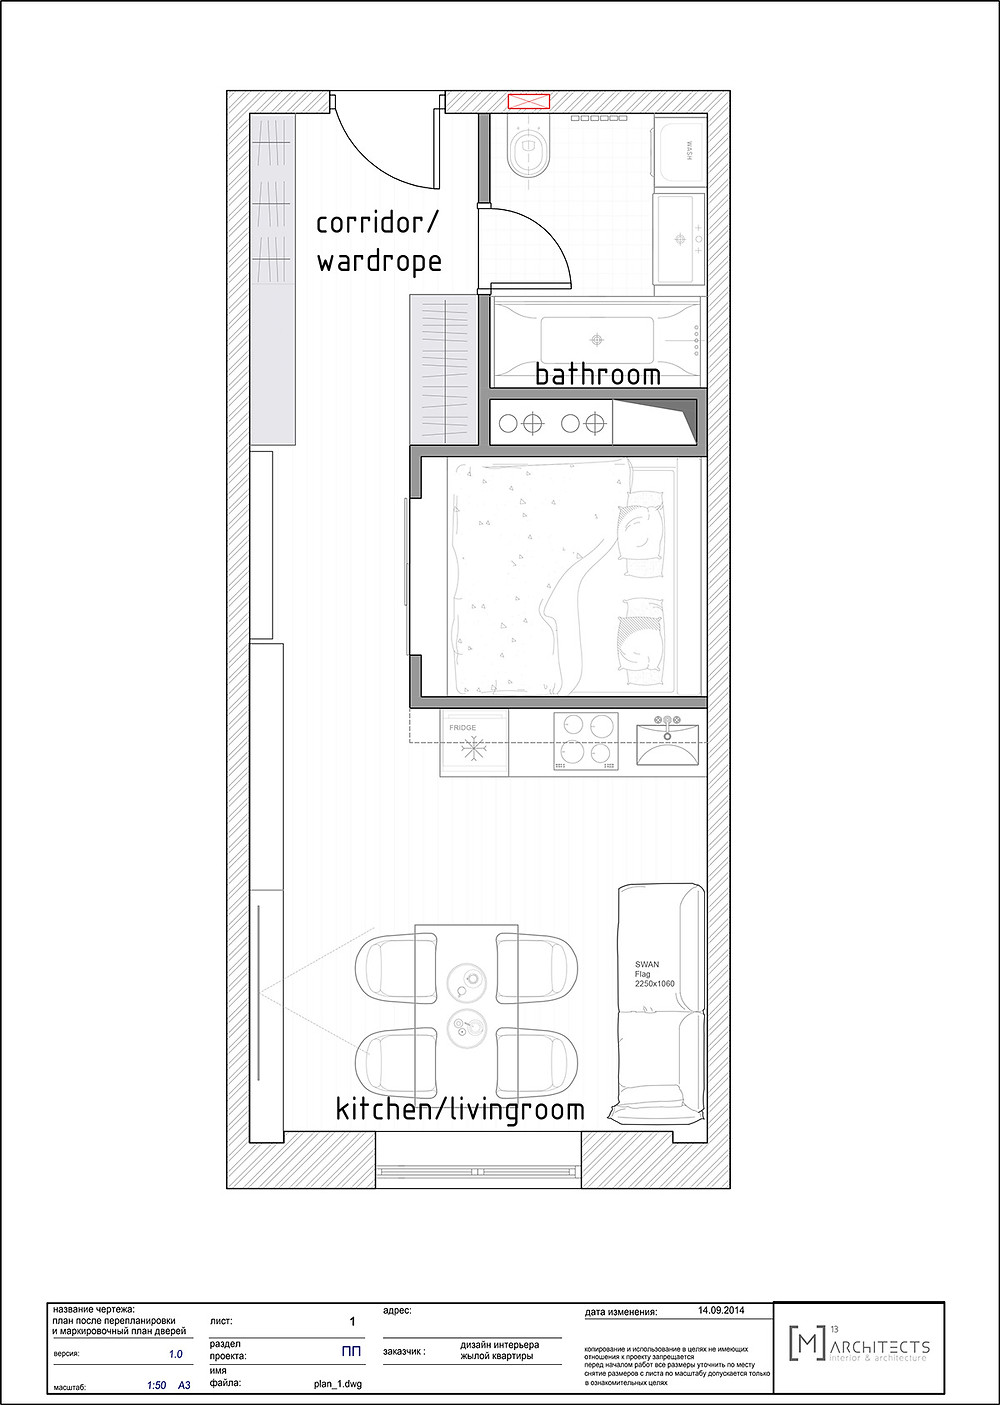 MINIMUM DESIGN APARTAMENTO PEQUENO